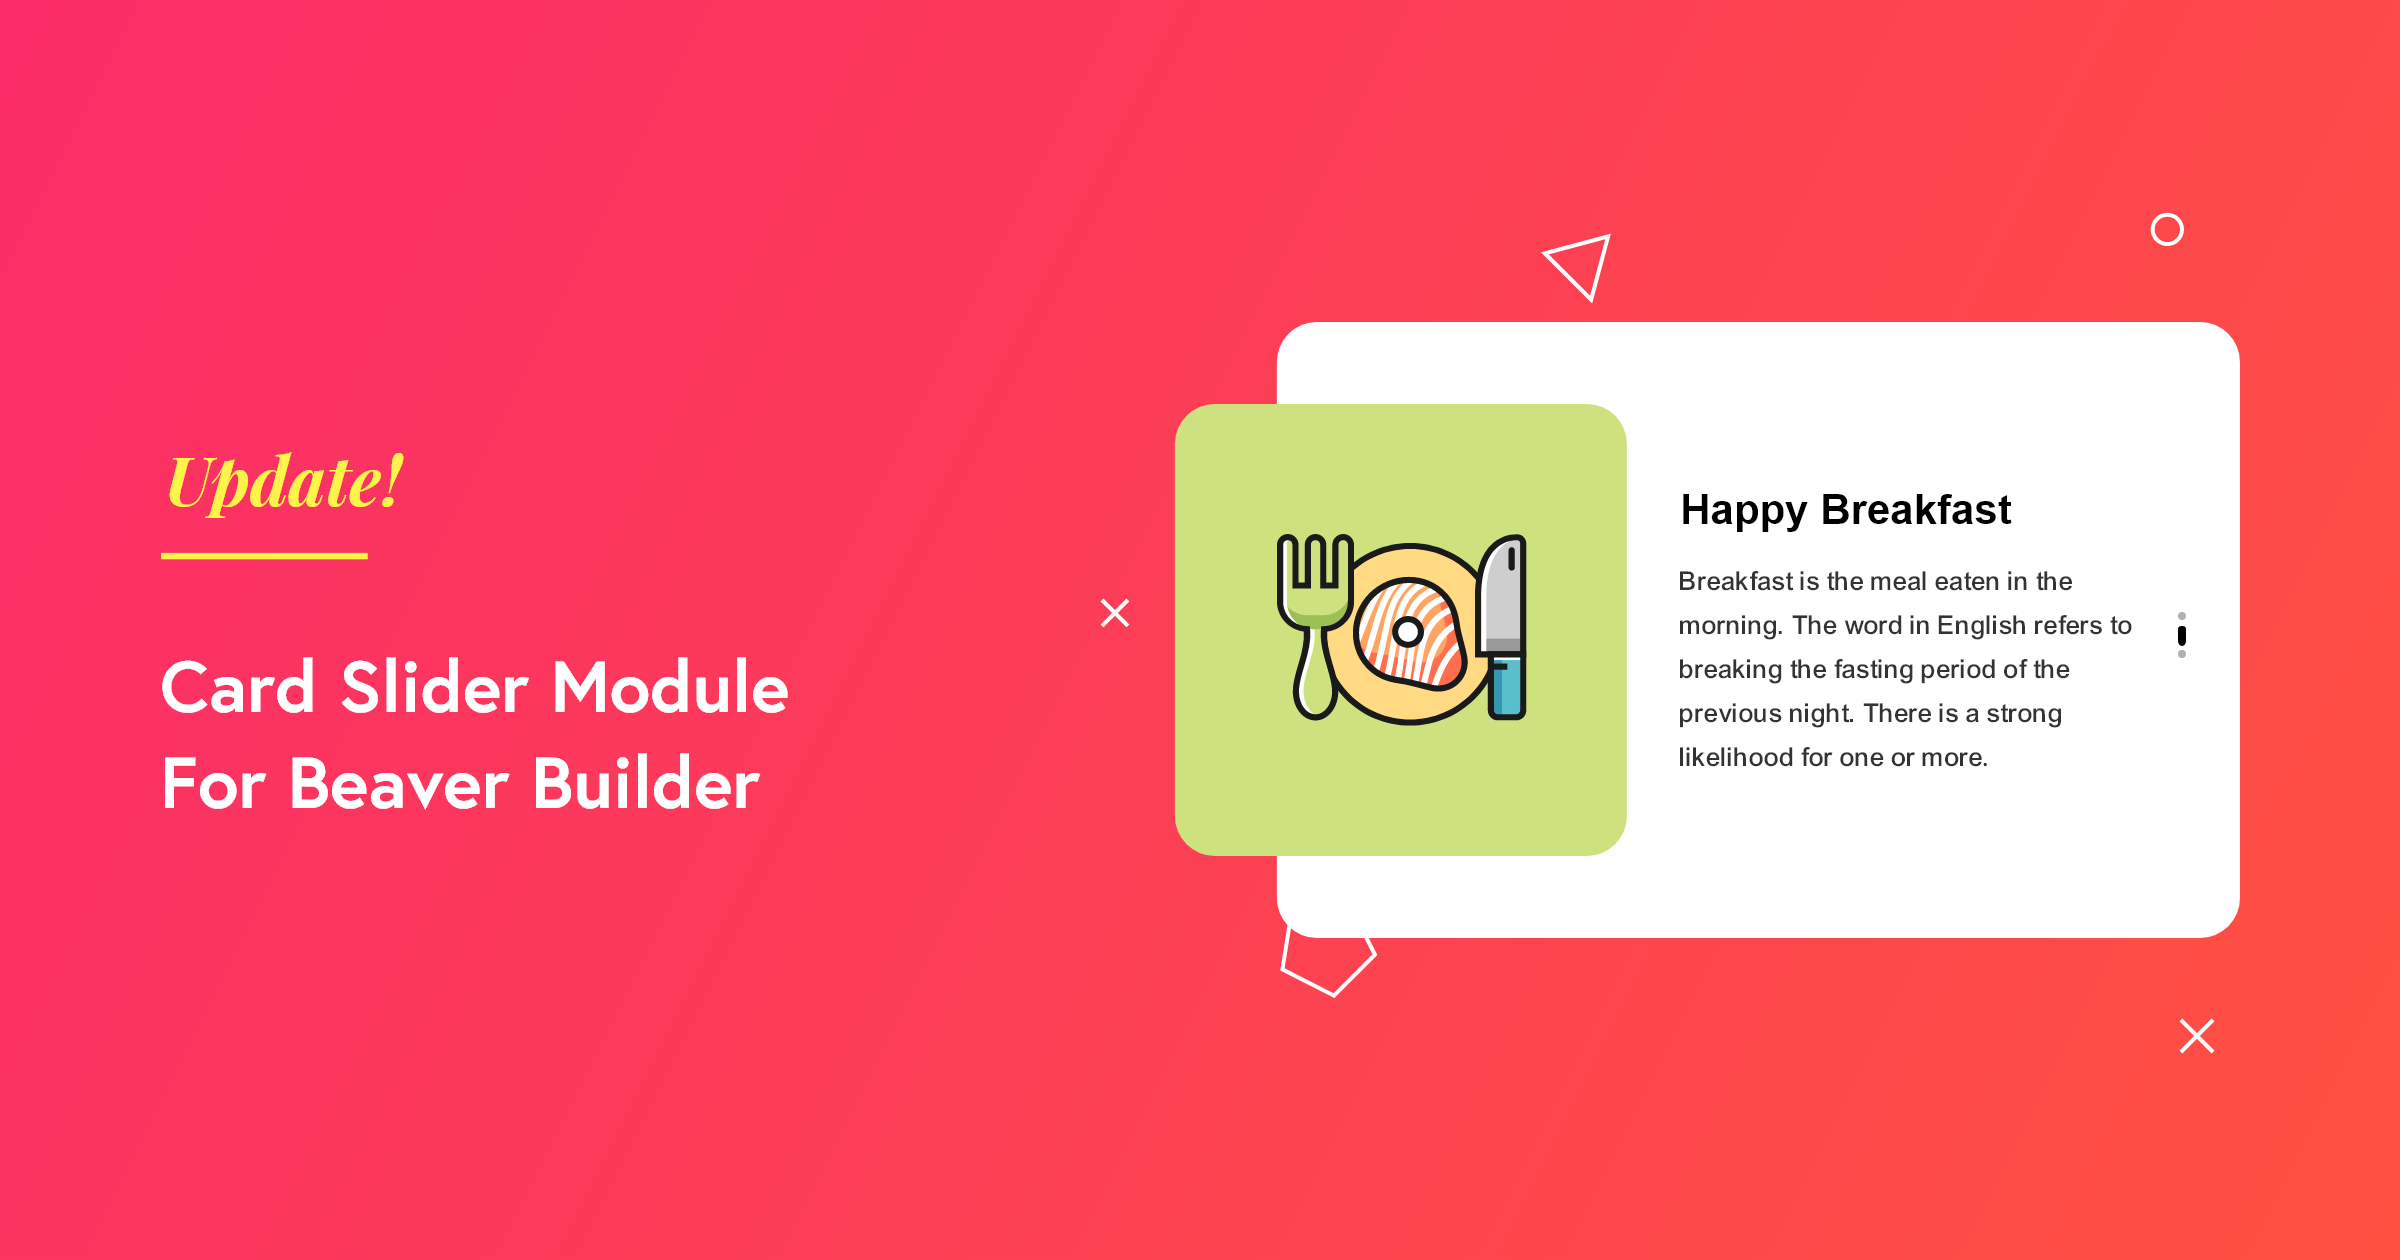 Card Slider Module for Beaver Builder